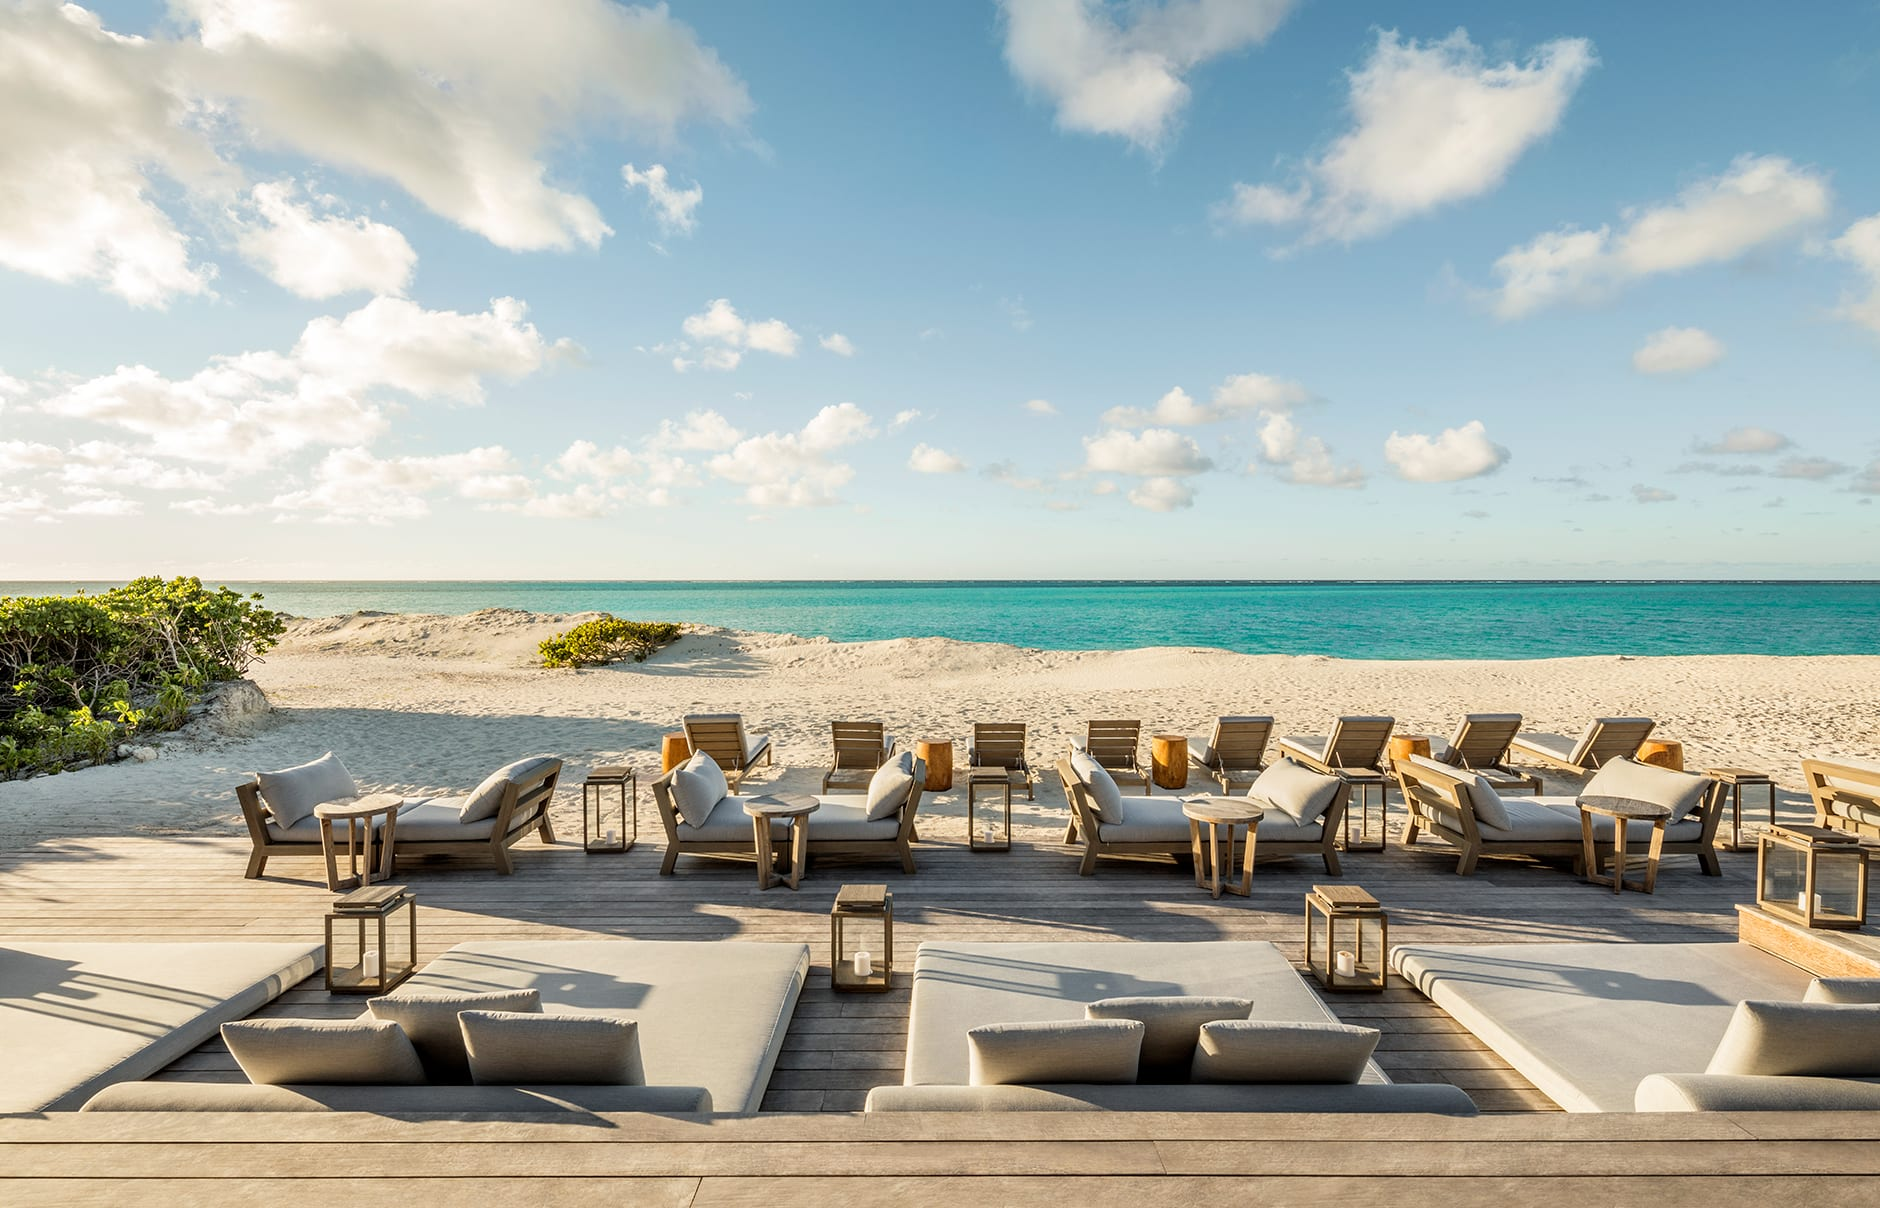 COMO Parrot Cay, Turks & Caicos, Caribbean. Hotel Review by TravelPlusStyle. Photo © COMO Hotels and Resorts